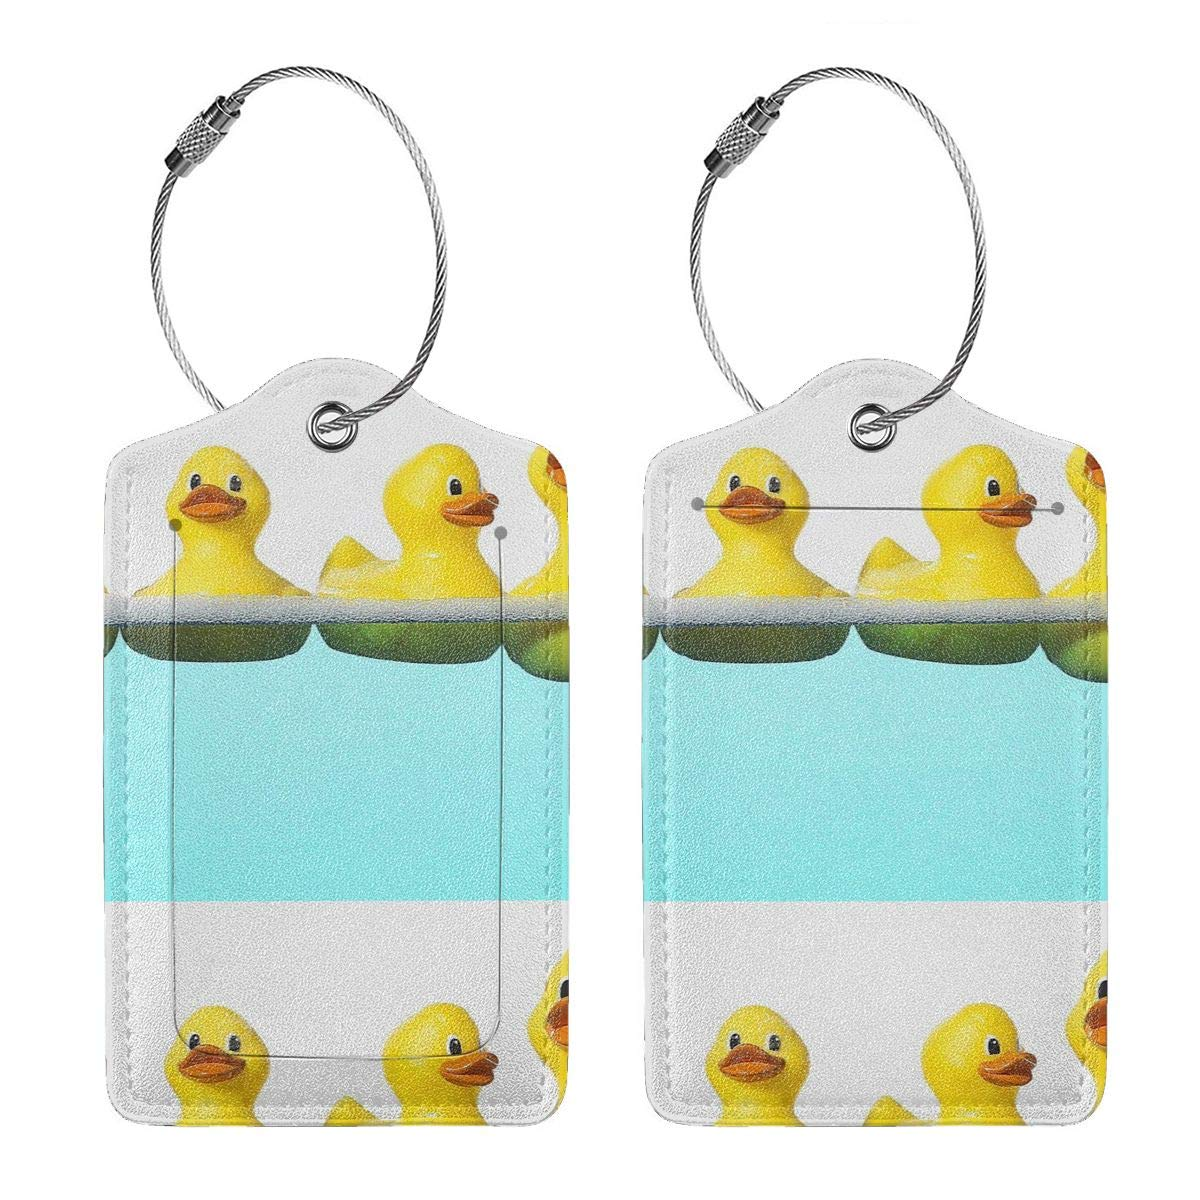 Yellow Duck In The Pool Leather Luggage Tags Personalized Address Card With Adjustable Strap